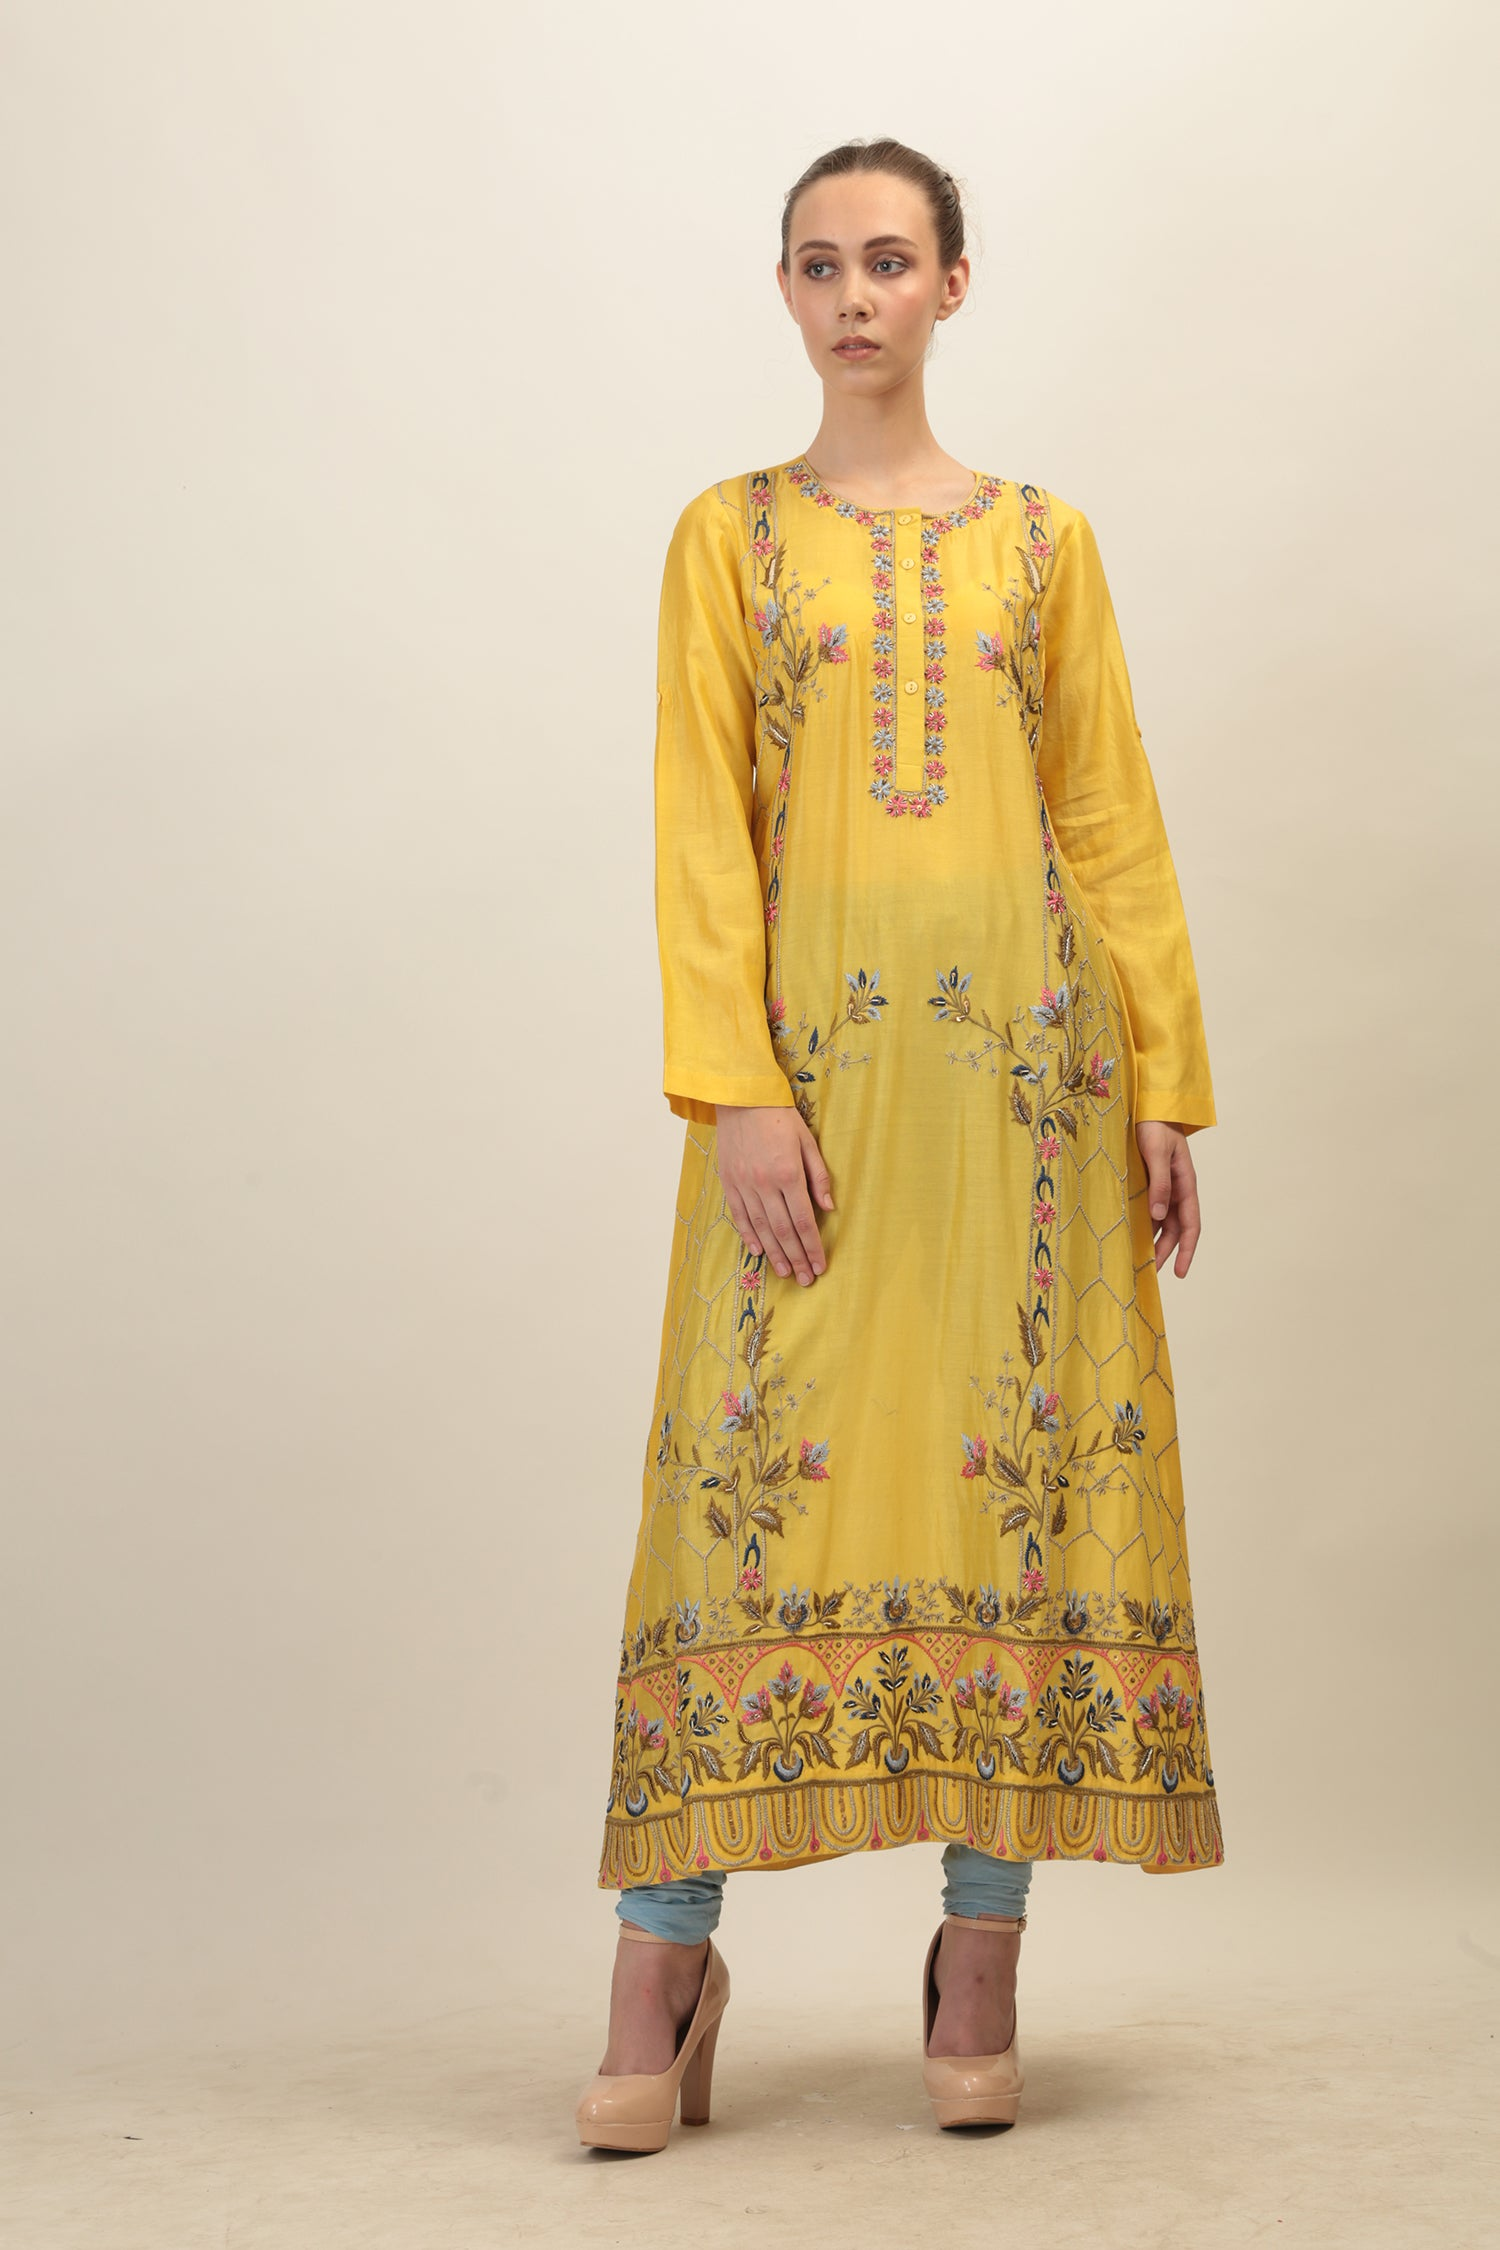 Vibrant Floral Embroidered Kurta - The Grand Trunk